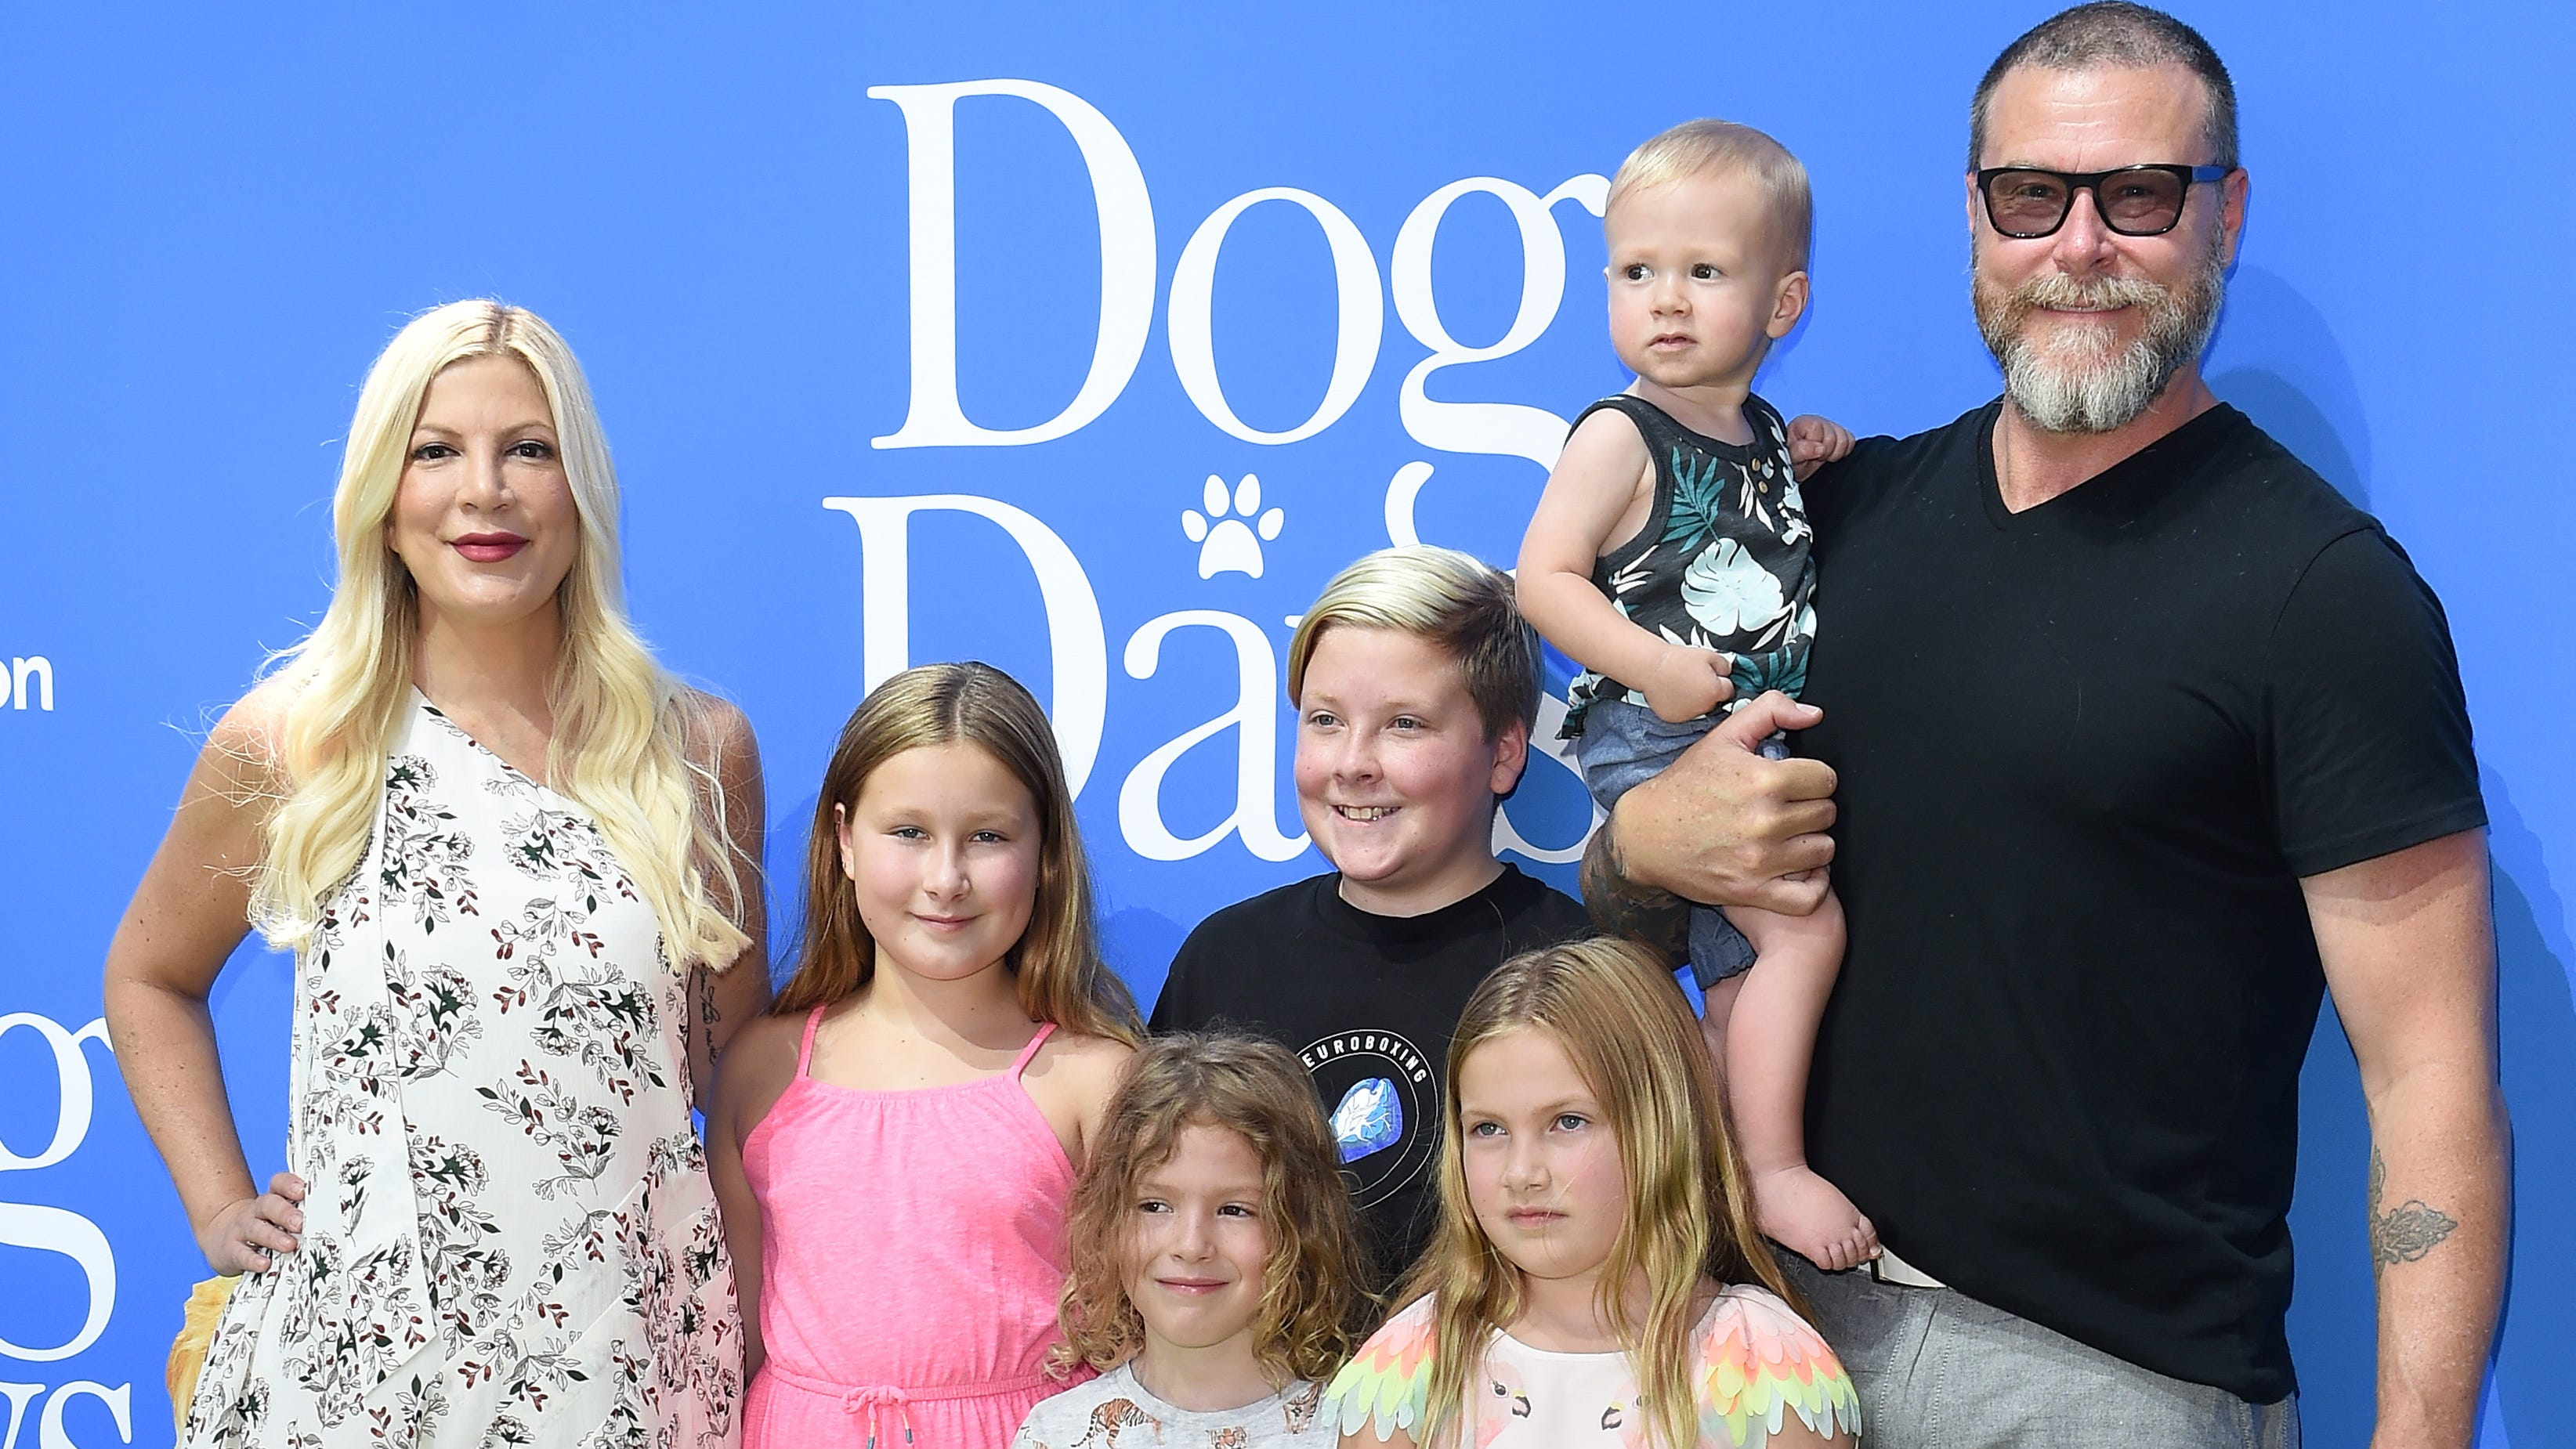 EDITORS' NOTE:  THIS IMAGE IS FOR ONE-TIME RIGHTS USAGE IN USA TODAY AND USATODAY.COM.  MUST NEGOTIATE THE RATE--RAS.  CENTURY CITY, CA - AUGUST 05:  Tori Spelling, Dean McDermott and family arrive at the premiere of LD Entertainment's 'Dog Days' at Westfield Century City on August 5, 2018 in Century City, California.  (Photo by Axelle/Bauer-Griffin/FilmMagic) ORG XMIT: 775204778 [Via MerlinFTP Drop]